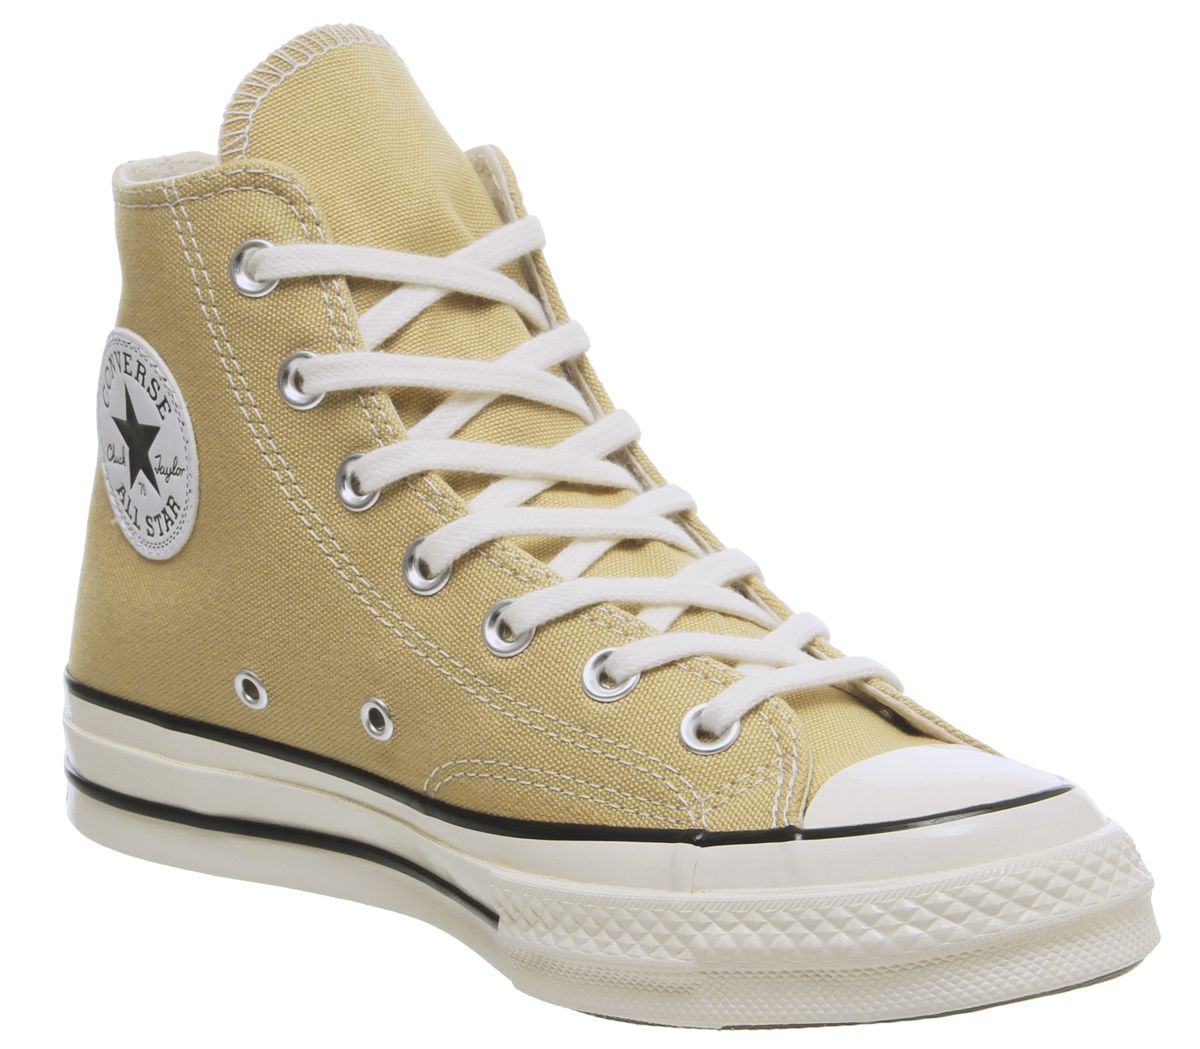 29e4c9052679 Converse All Star Hi 70 s Trainers Club Gold Egret Black - Unisex Sports